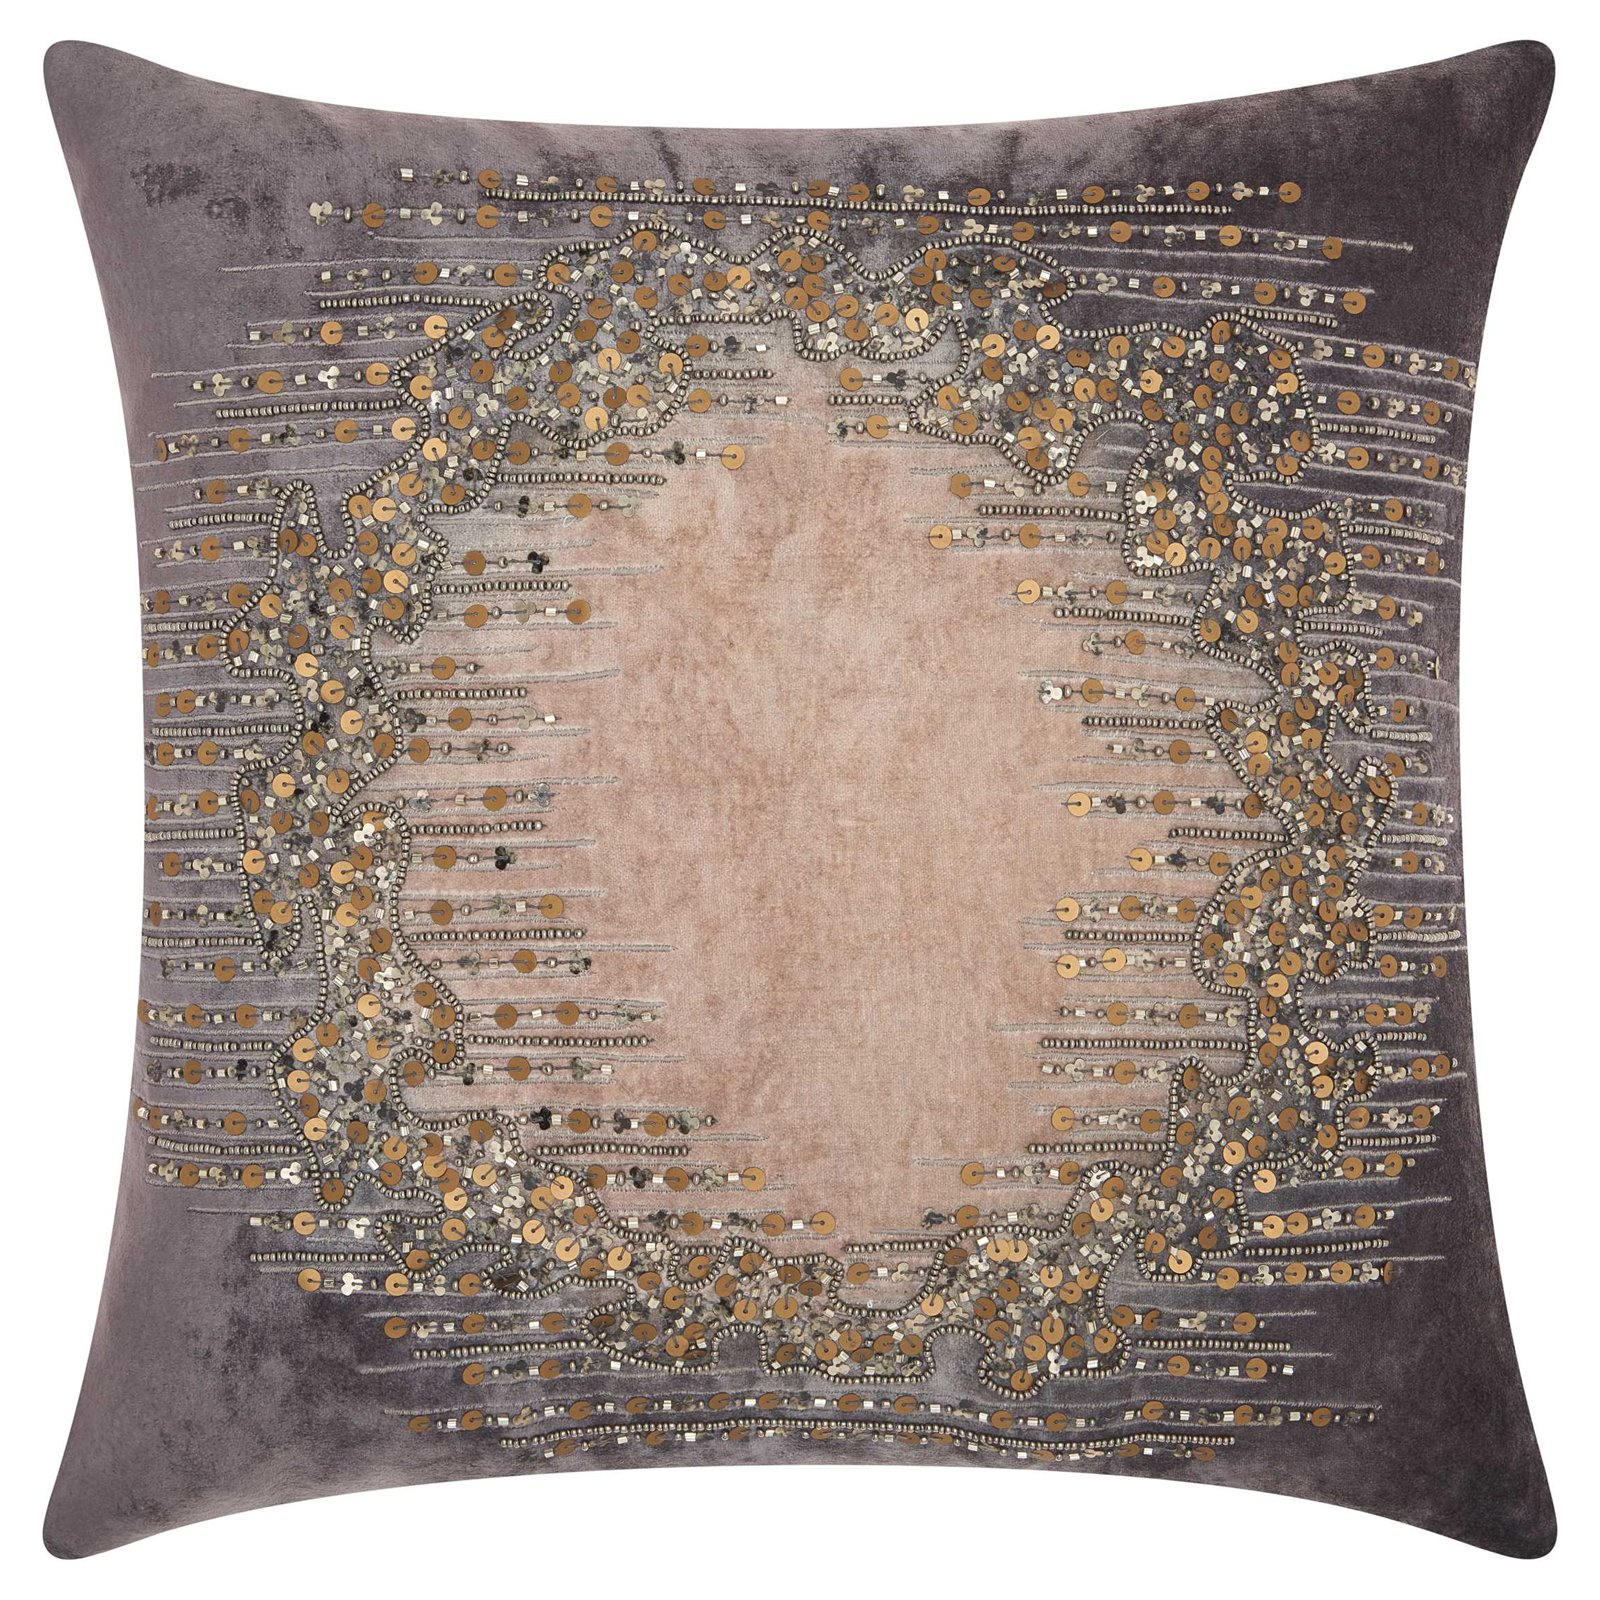 Nourison Couture Luster Beaded Lunar Reflect Charcoal Throw Pillow by Nourison